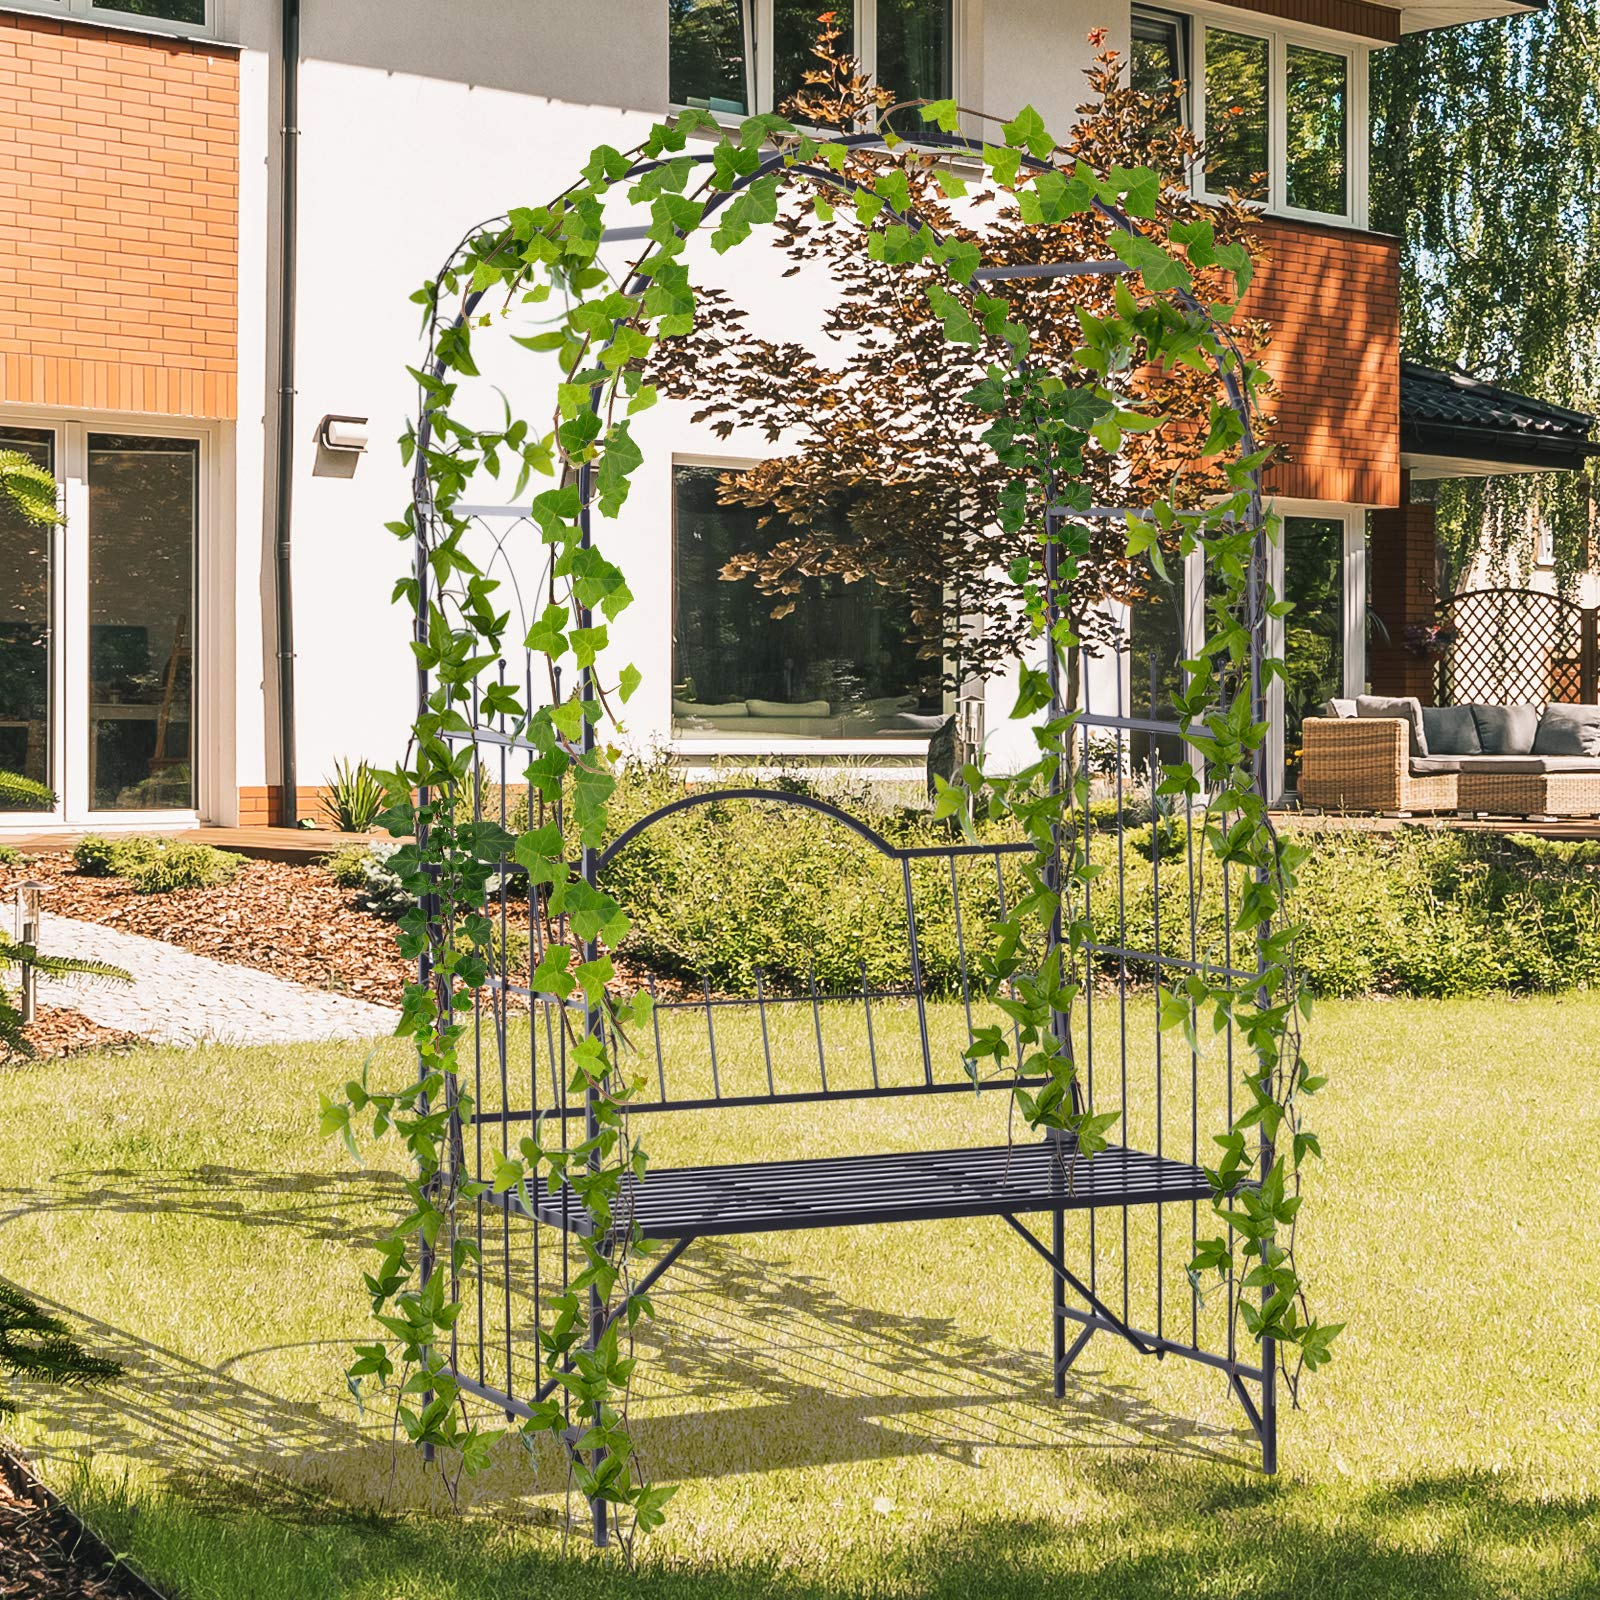 Outsunny Outdoor Garden Arbor Arch Steel Metal with Bench Seat - Black by Outsunny (Image #2)